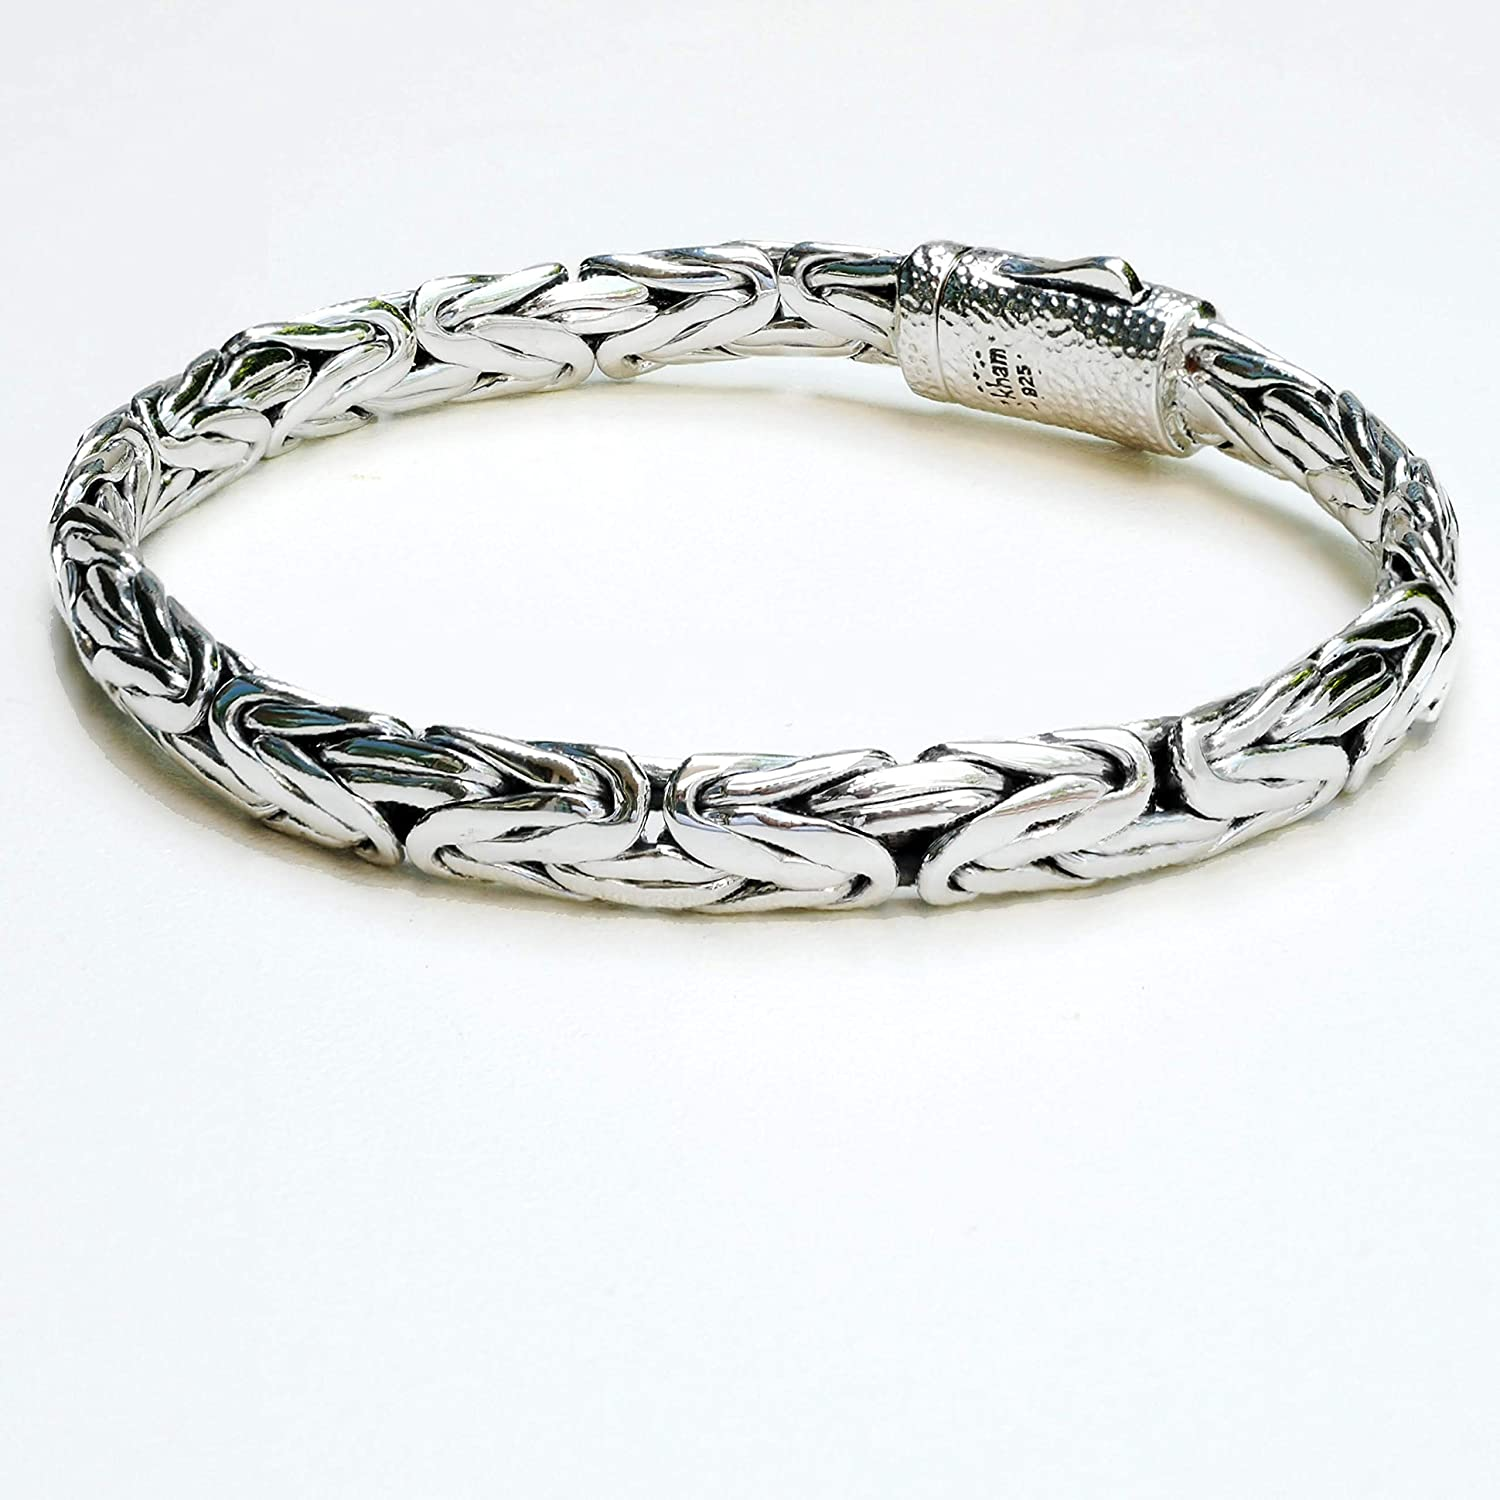 8.2 mm Woven Sterling Silver Braided Bali Style Cable Antique Style Byzantine Link Chain Bracelet for Men Length 7.5,8,8.5,9 inches 9 inches 8.5 Bangkok S03